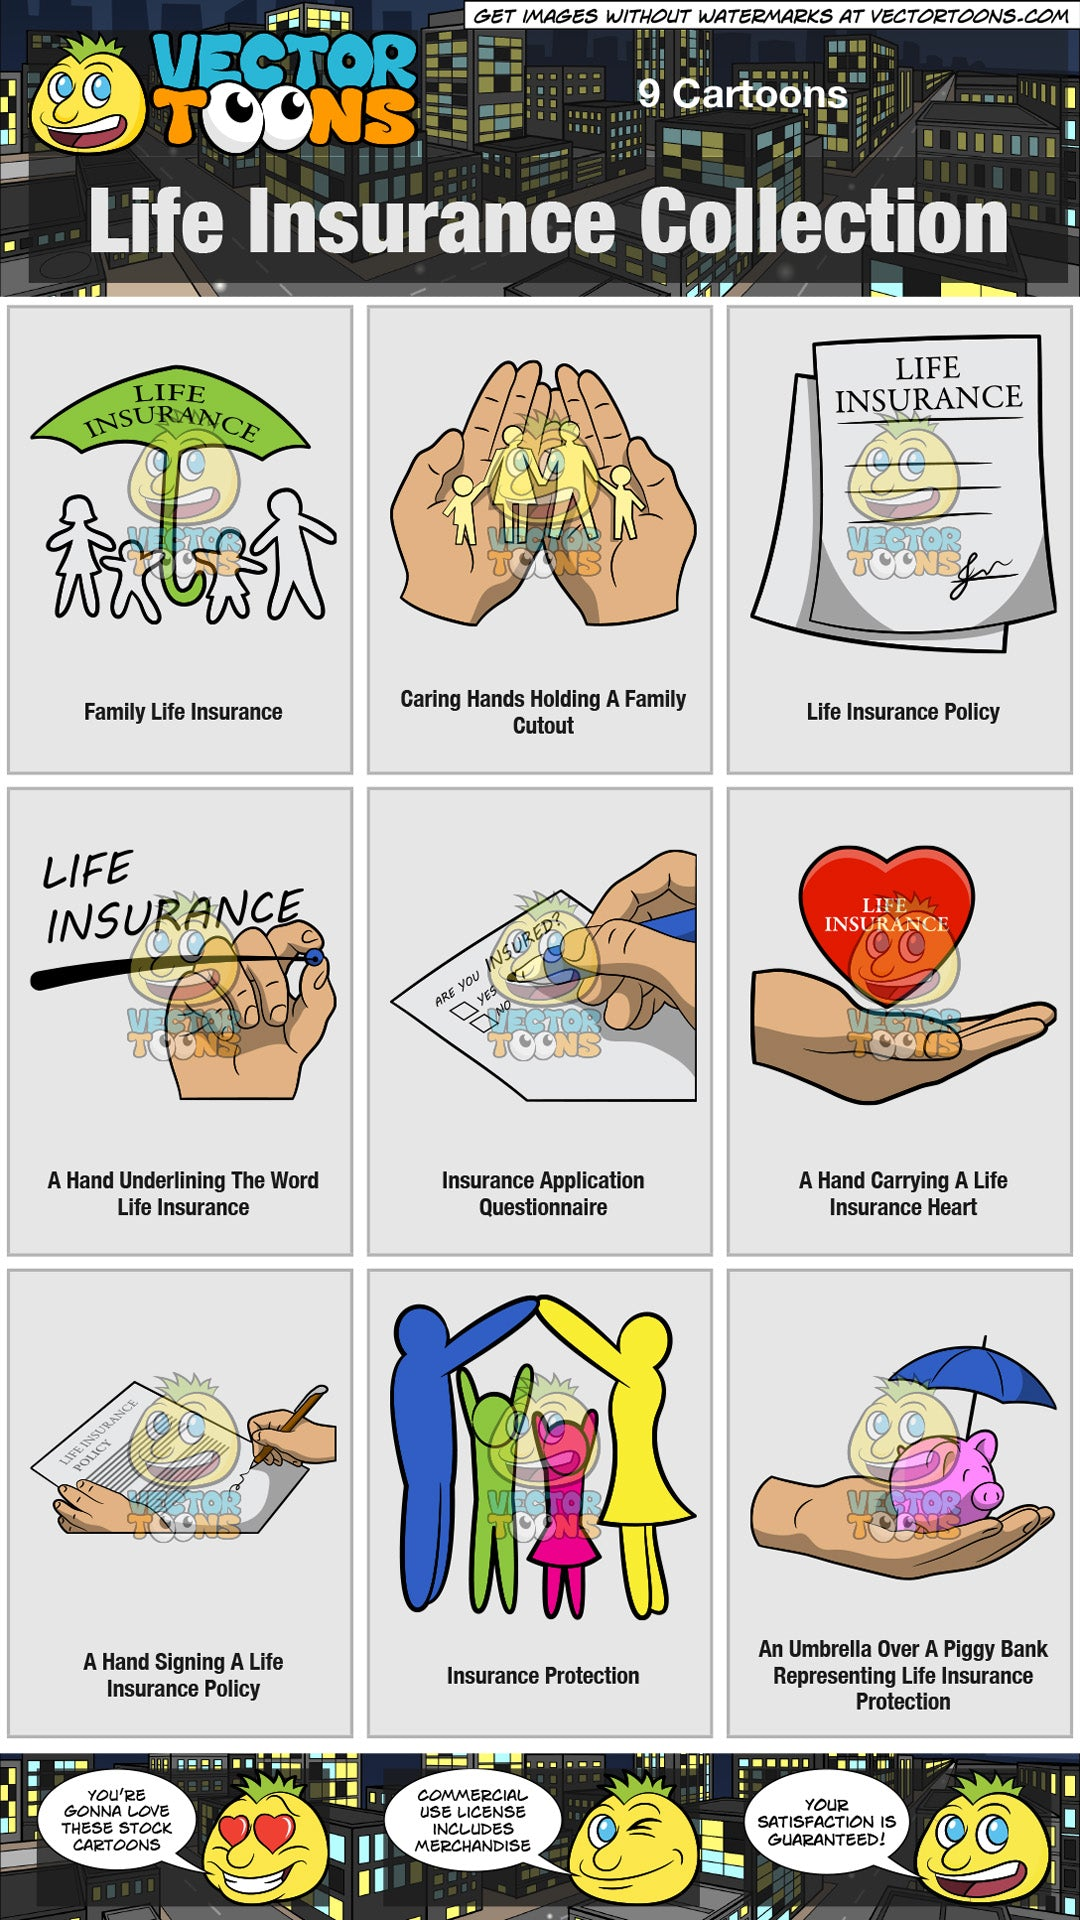 Life Insurance Collection